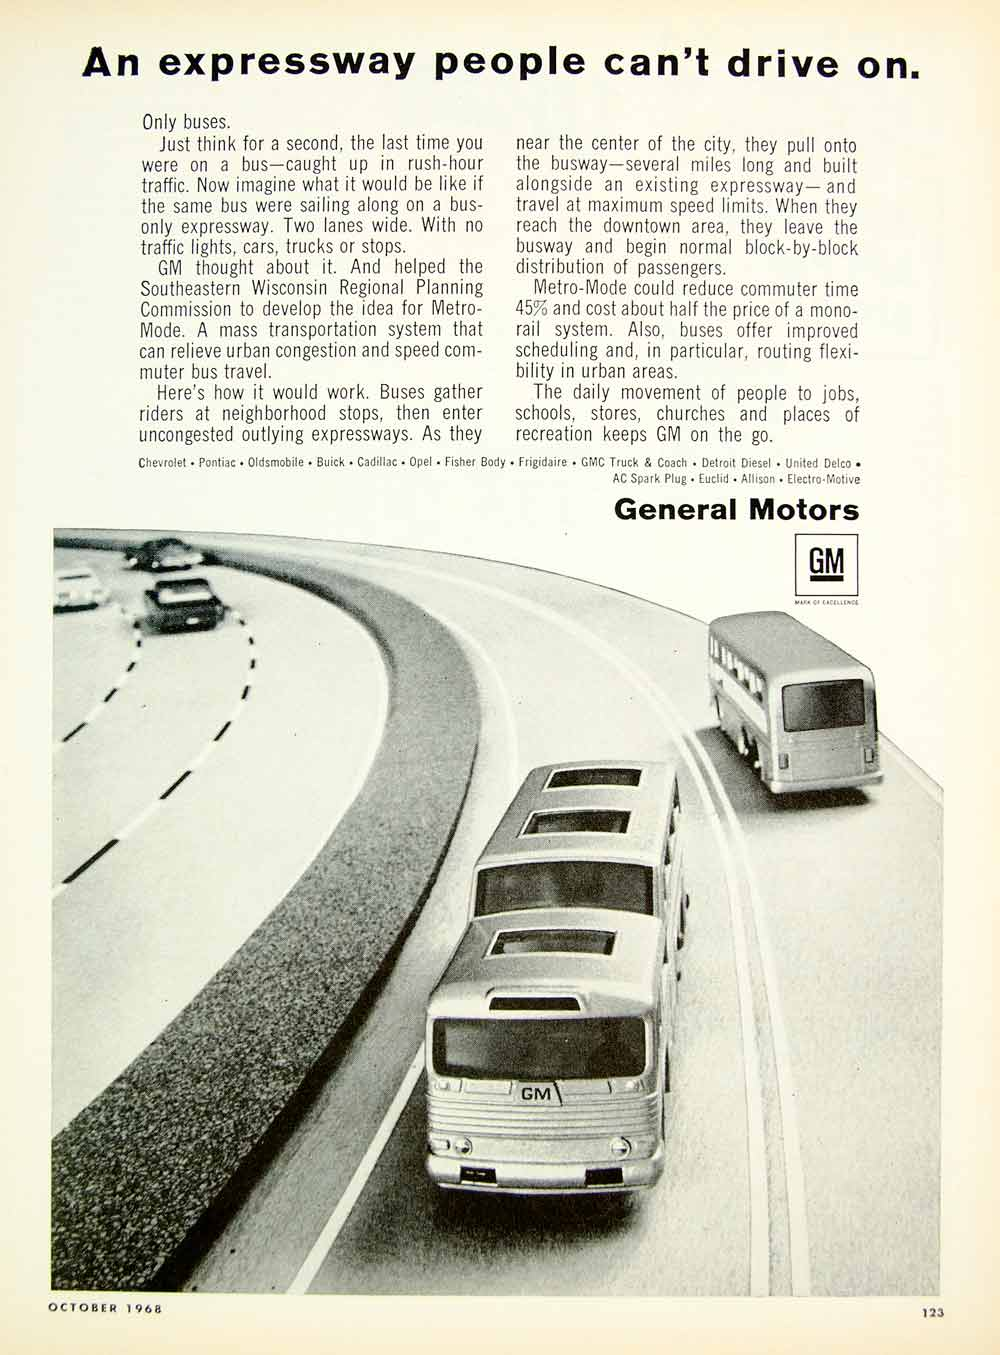 1968 Ad General Motors Metro Mode Expressway Highway Commuter Bus Lanes GM YHR3